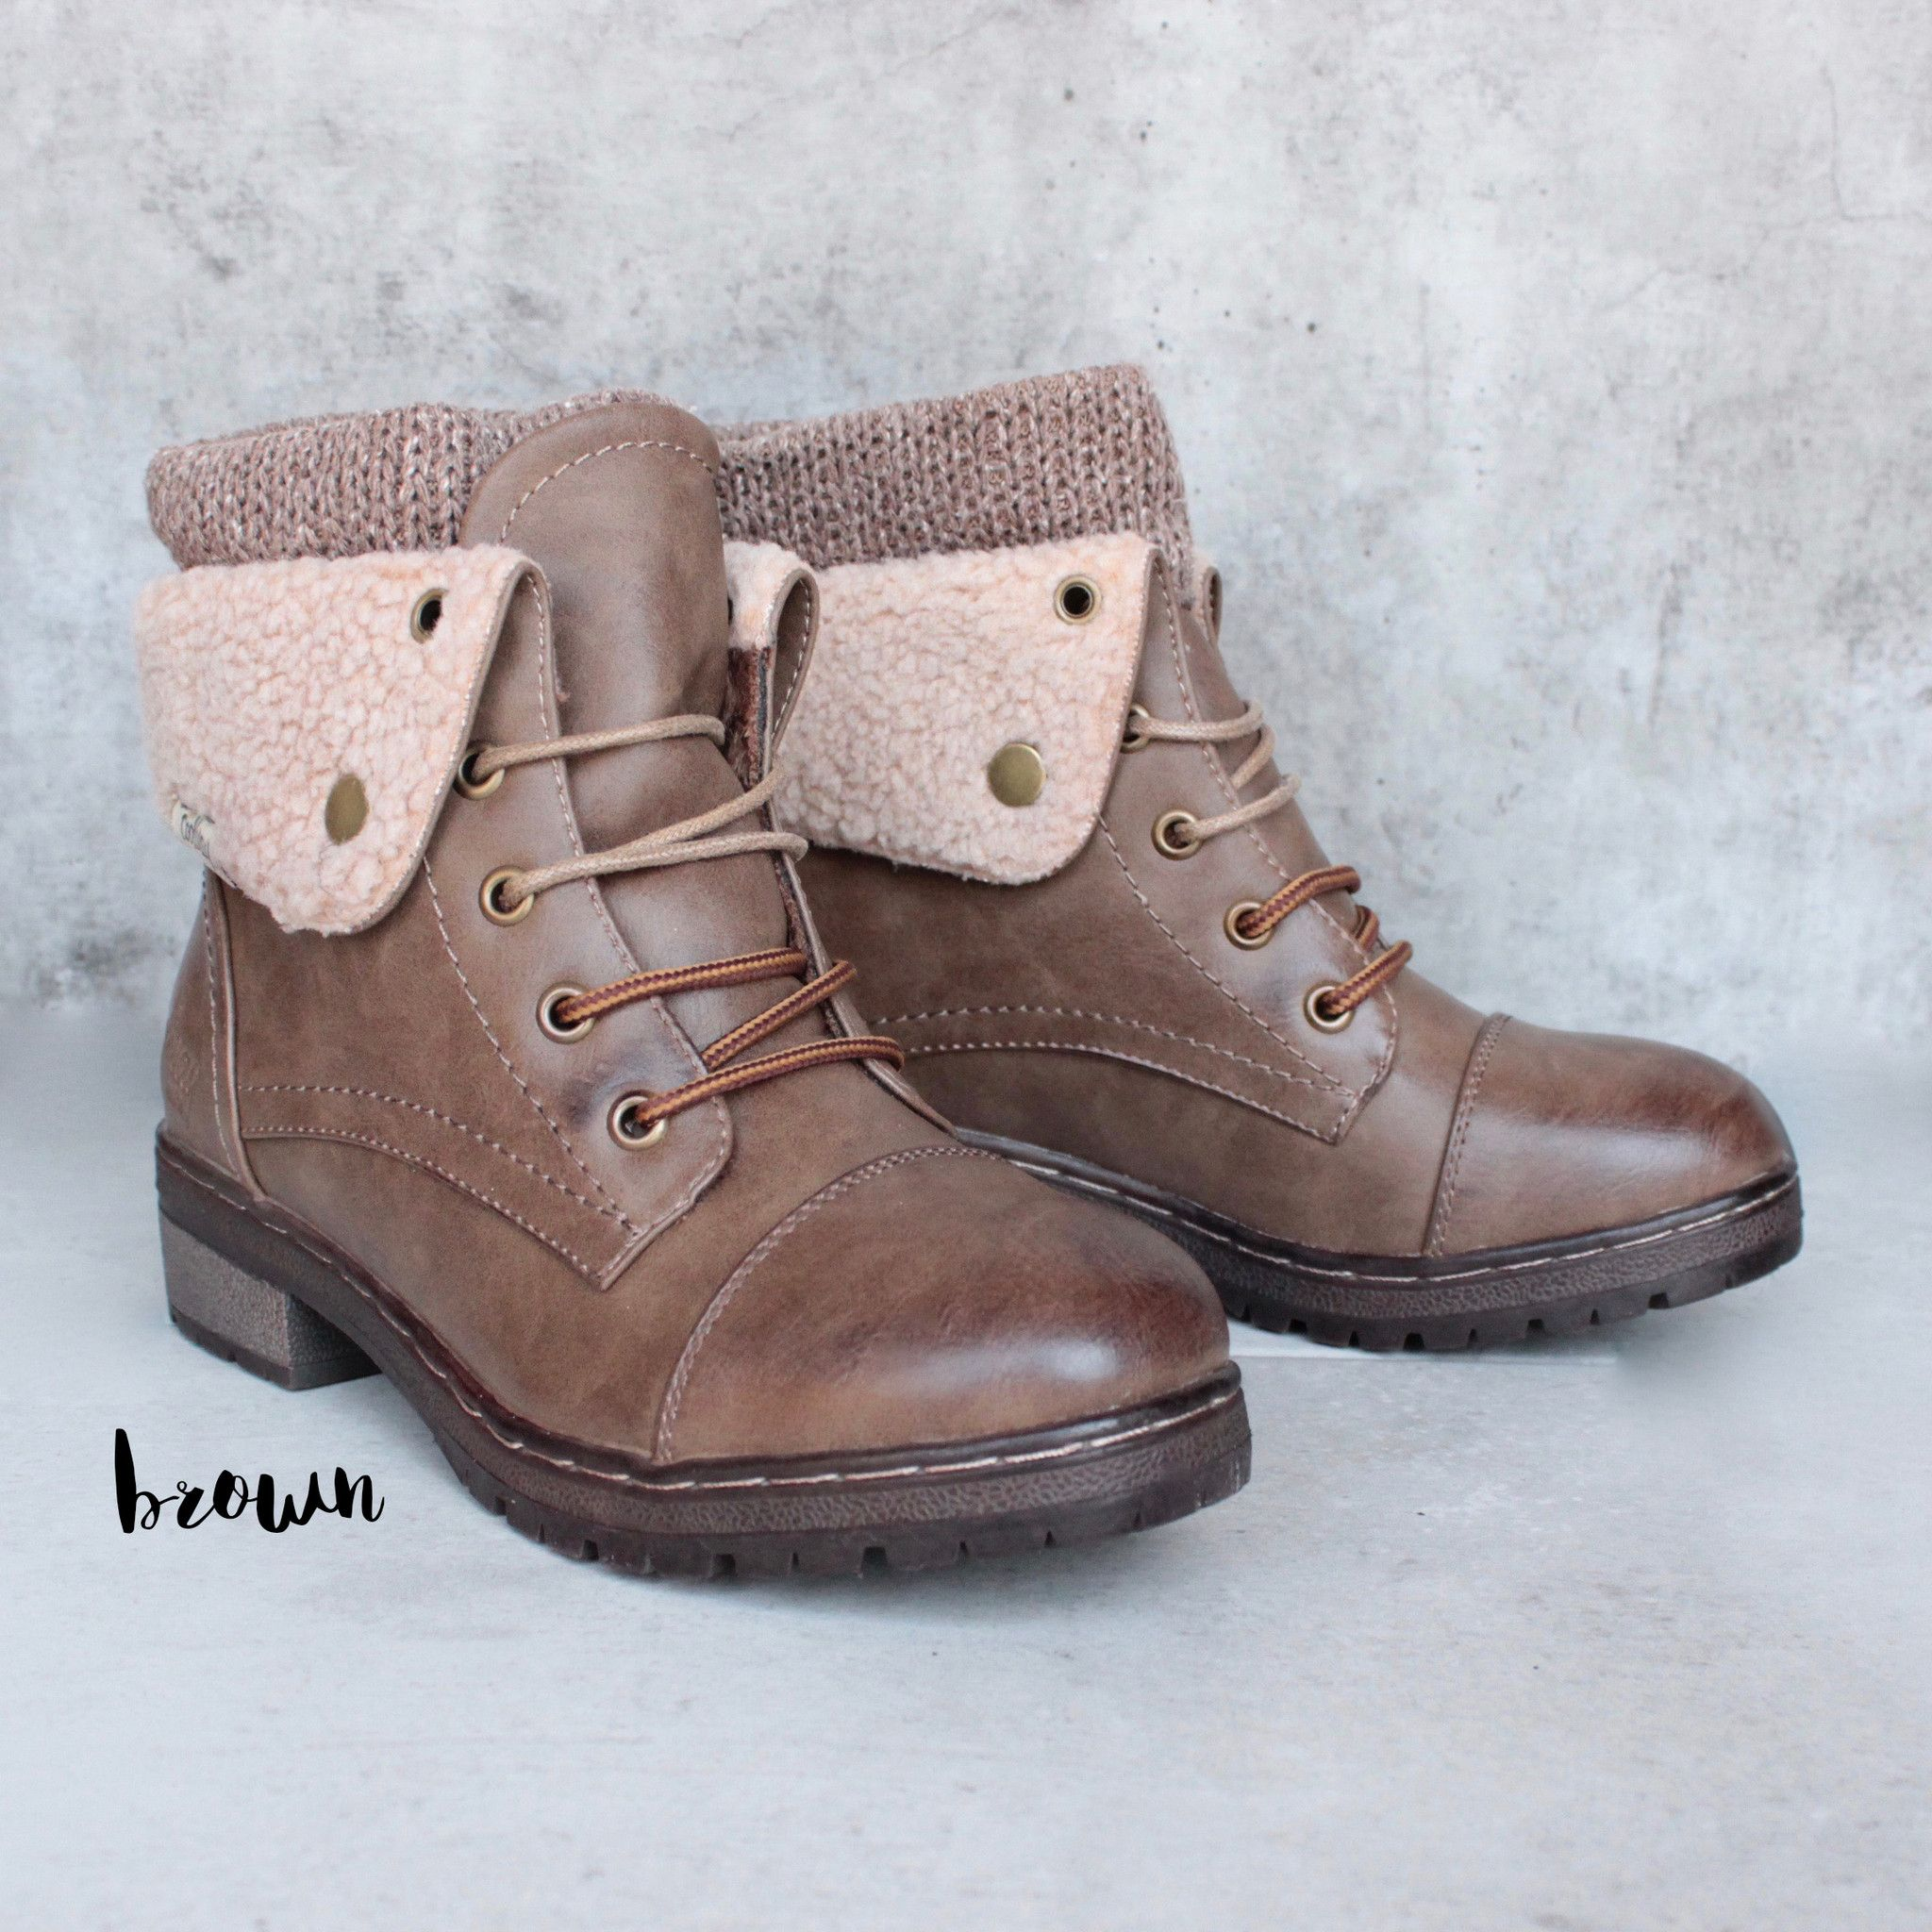 COOLWAY Ankle boots discount wide range of 02XRp5C9